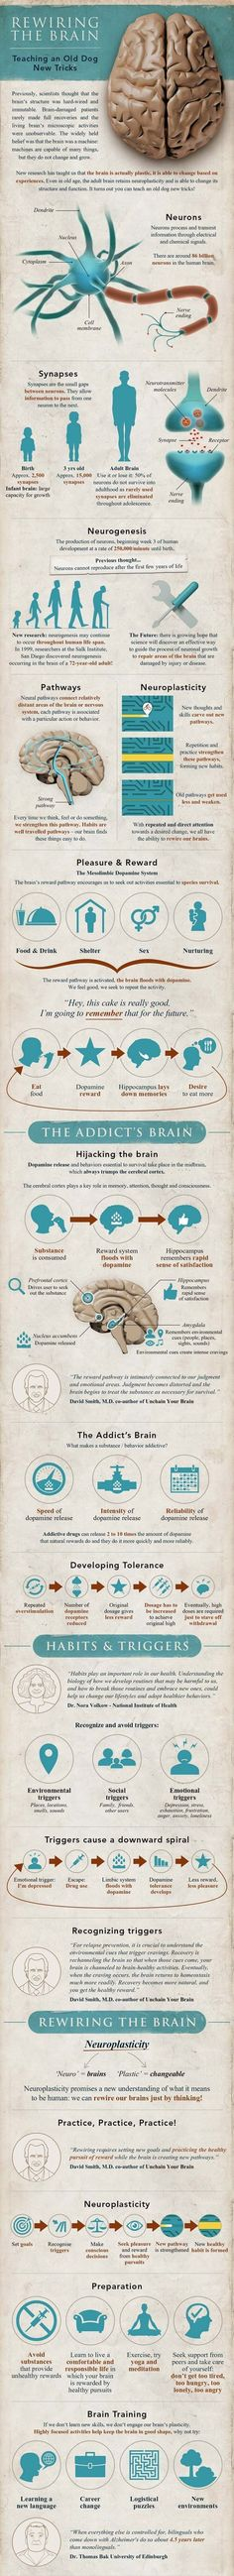 Infographic Introduction to Neuroplasticity and Cognitive Therapy ~ ~ Did you know you can rewire your brain? Neuroscientific breakthroughs are revealing fascinating new truths about how we can control our brains to create new positive neuropathways Brain Health, Mental Health, Guter Rat, Brain Science, Science Facts, Science Education, Health Education, Life Science, Physical Education